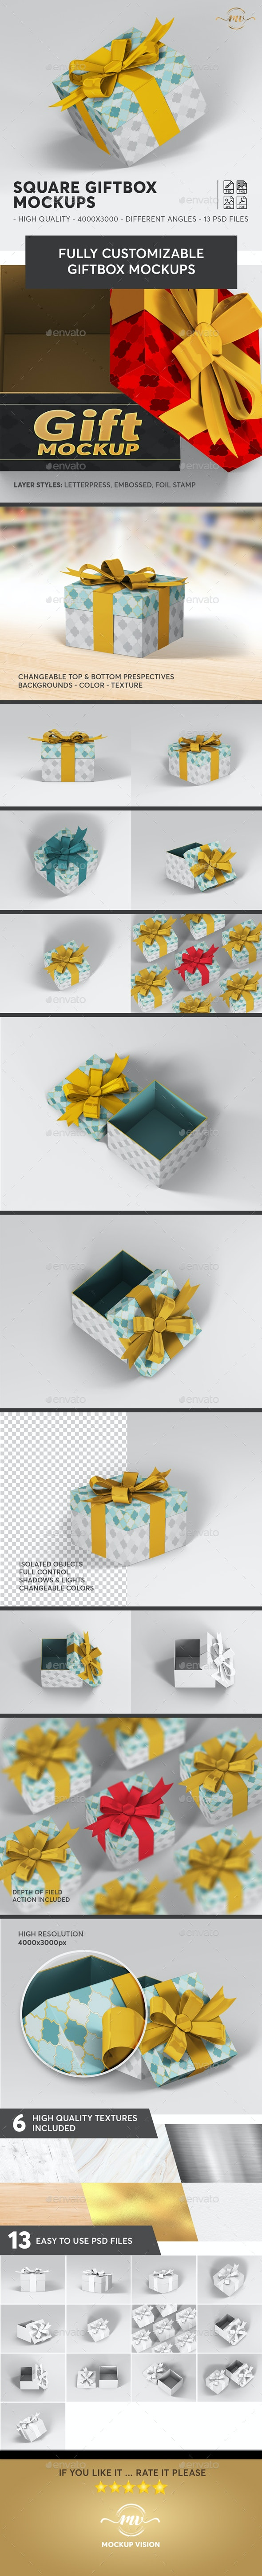 Gift Box Square Mockups - Miscellaneous Packaging